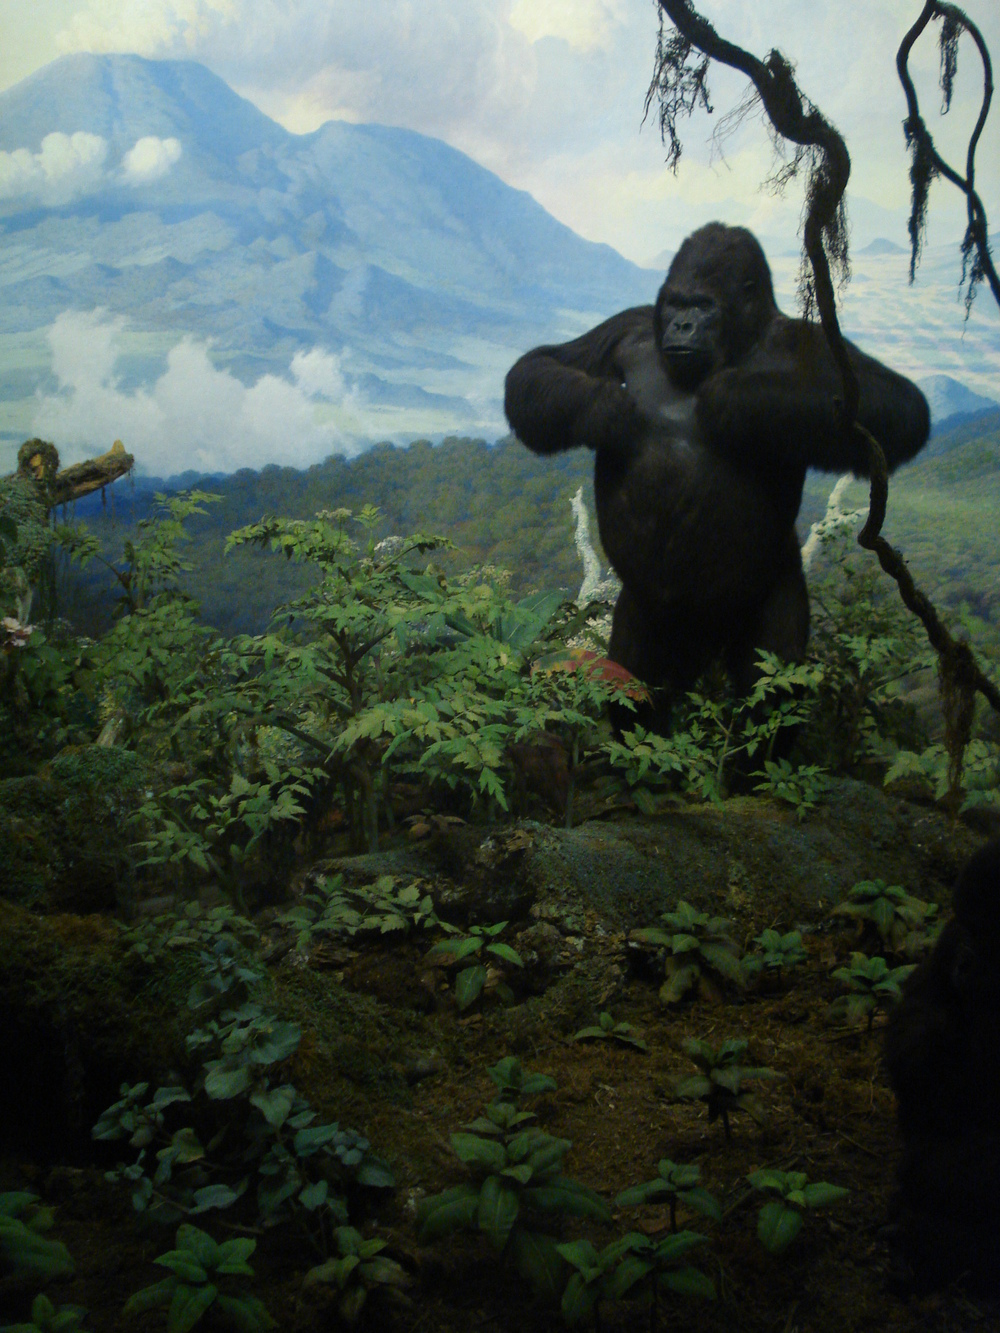 Gorilla group, AMNH, New York.